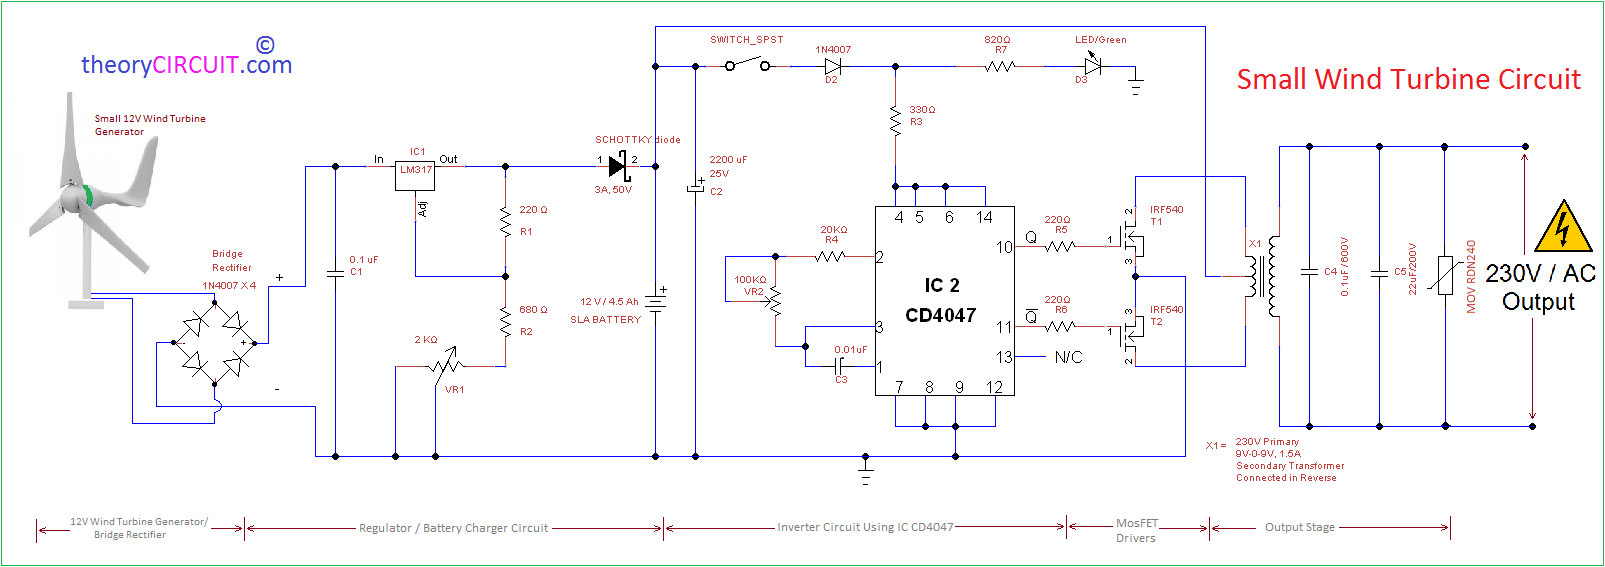 Small Wind Turbine for Home on 3 phase motor connection diagram, ceiling fan installation diagram, 3 phase generator diagram, 3 phase thermostat diagram, 3 phase regulator, 3 phase cable, 3 phase block diagram, 3 phase connector diagram, 3 phase electric panel diagrams, 3 phase power, 3 phase relay, 3 phase transformers diagram, 3 phase coil diagram, 3 phase electricity diagram, 3 phase converter diagram, 3 phase circuit, 3 phase inverter diagram, 3 phase schematic diagrams, 3 phase wire, 3 phase plug,